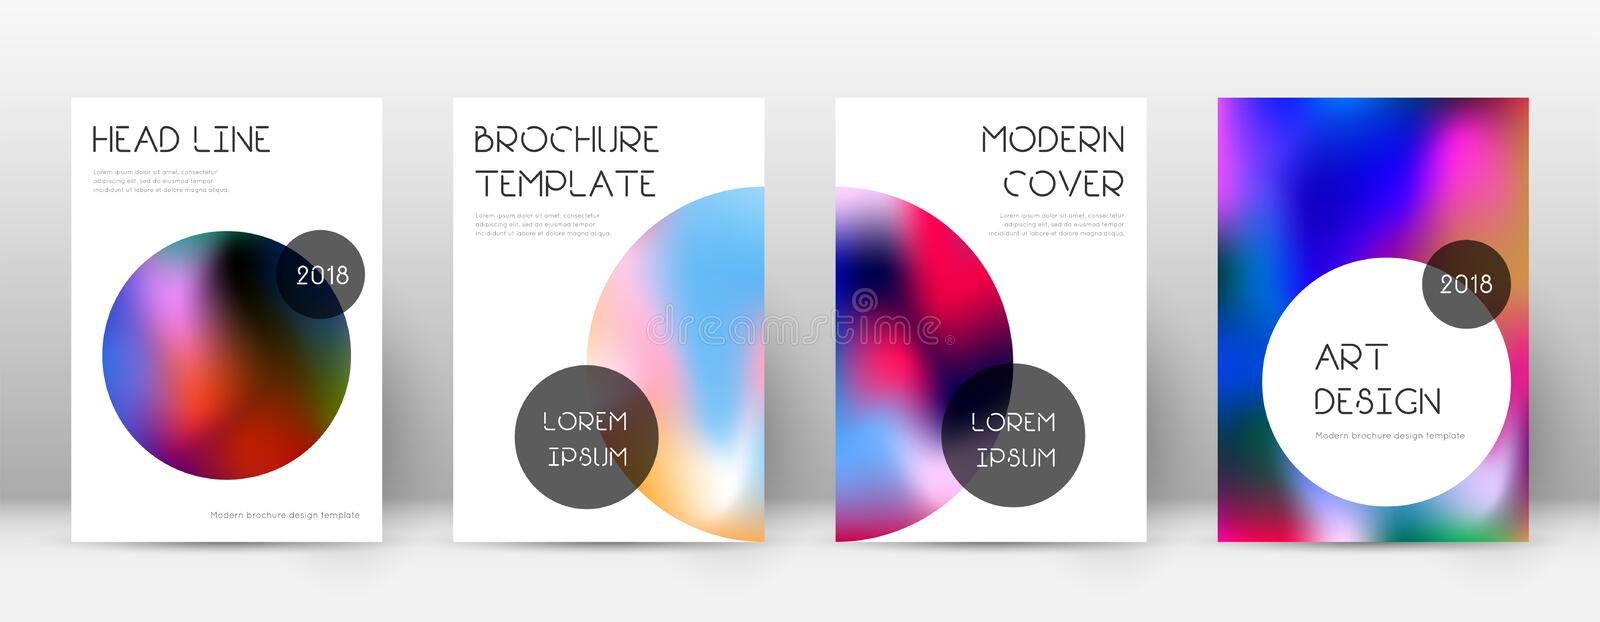 Flyer layout. Trendy tempting template for Brochure, Annual Report, Magazine, Poster, Corporate Presentation, Portfolio, Flyer. Beauteous colorful cover page vector illustration